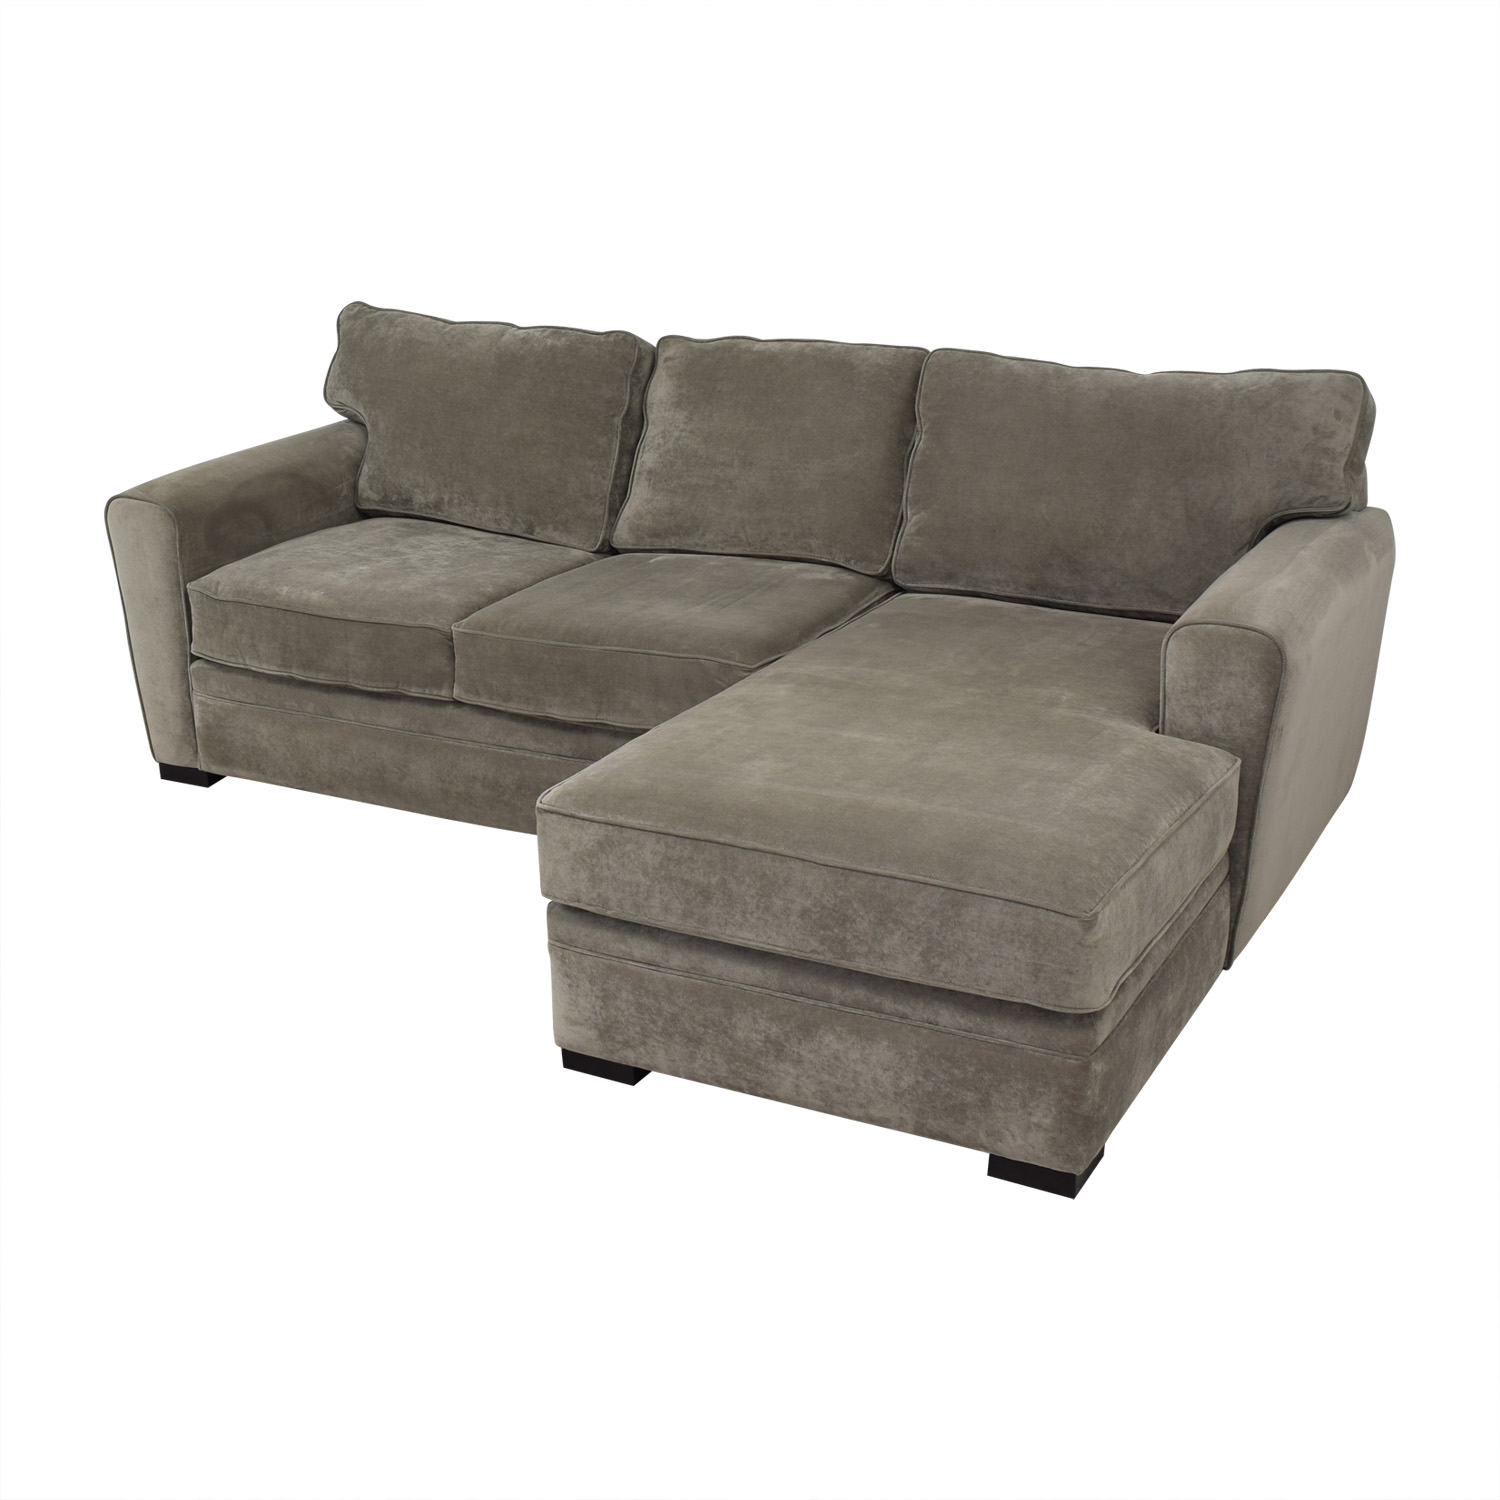 shop Raymour & Flanigan Artemis II Sectional Sofa with Chaise Raymour & Flanigan